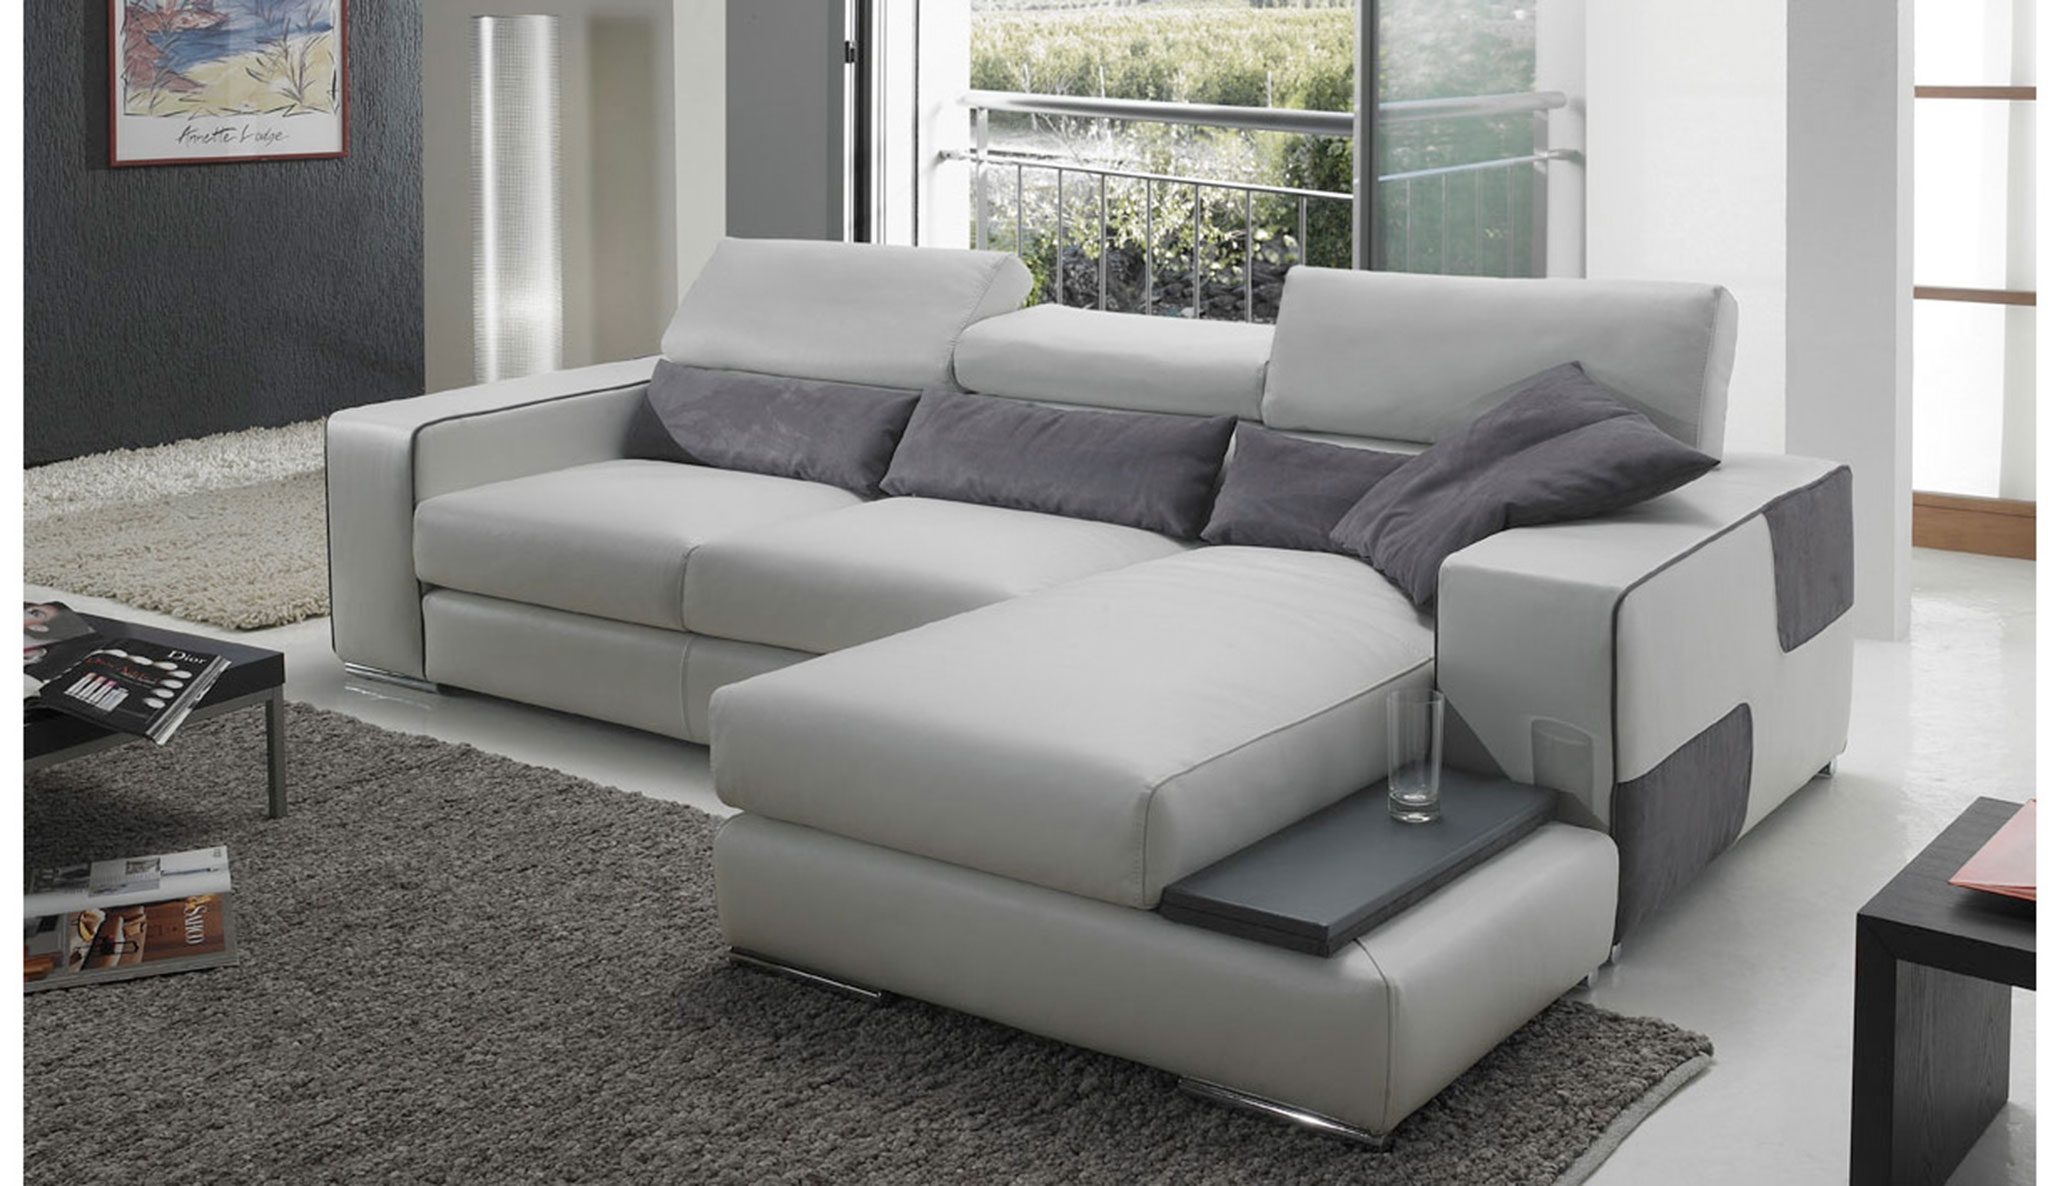 Canape D Angle Cdiscount Beau Collection Canap Angle 6 Places Bobochic Canap Scandi Places Et Convertible